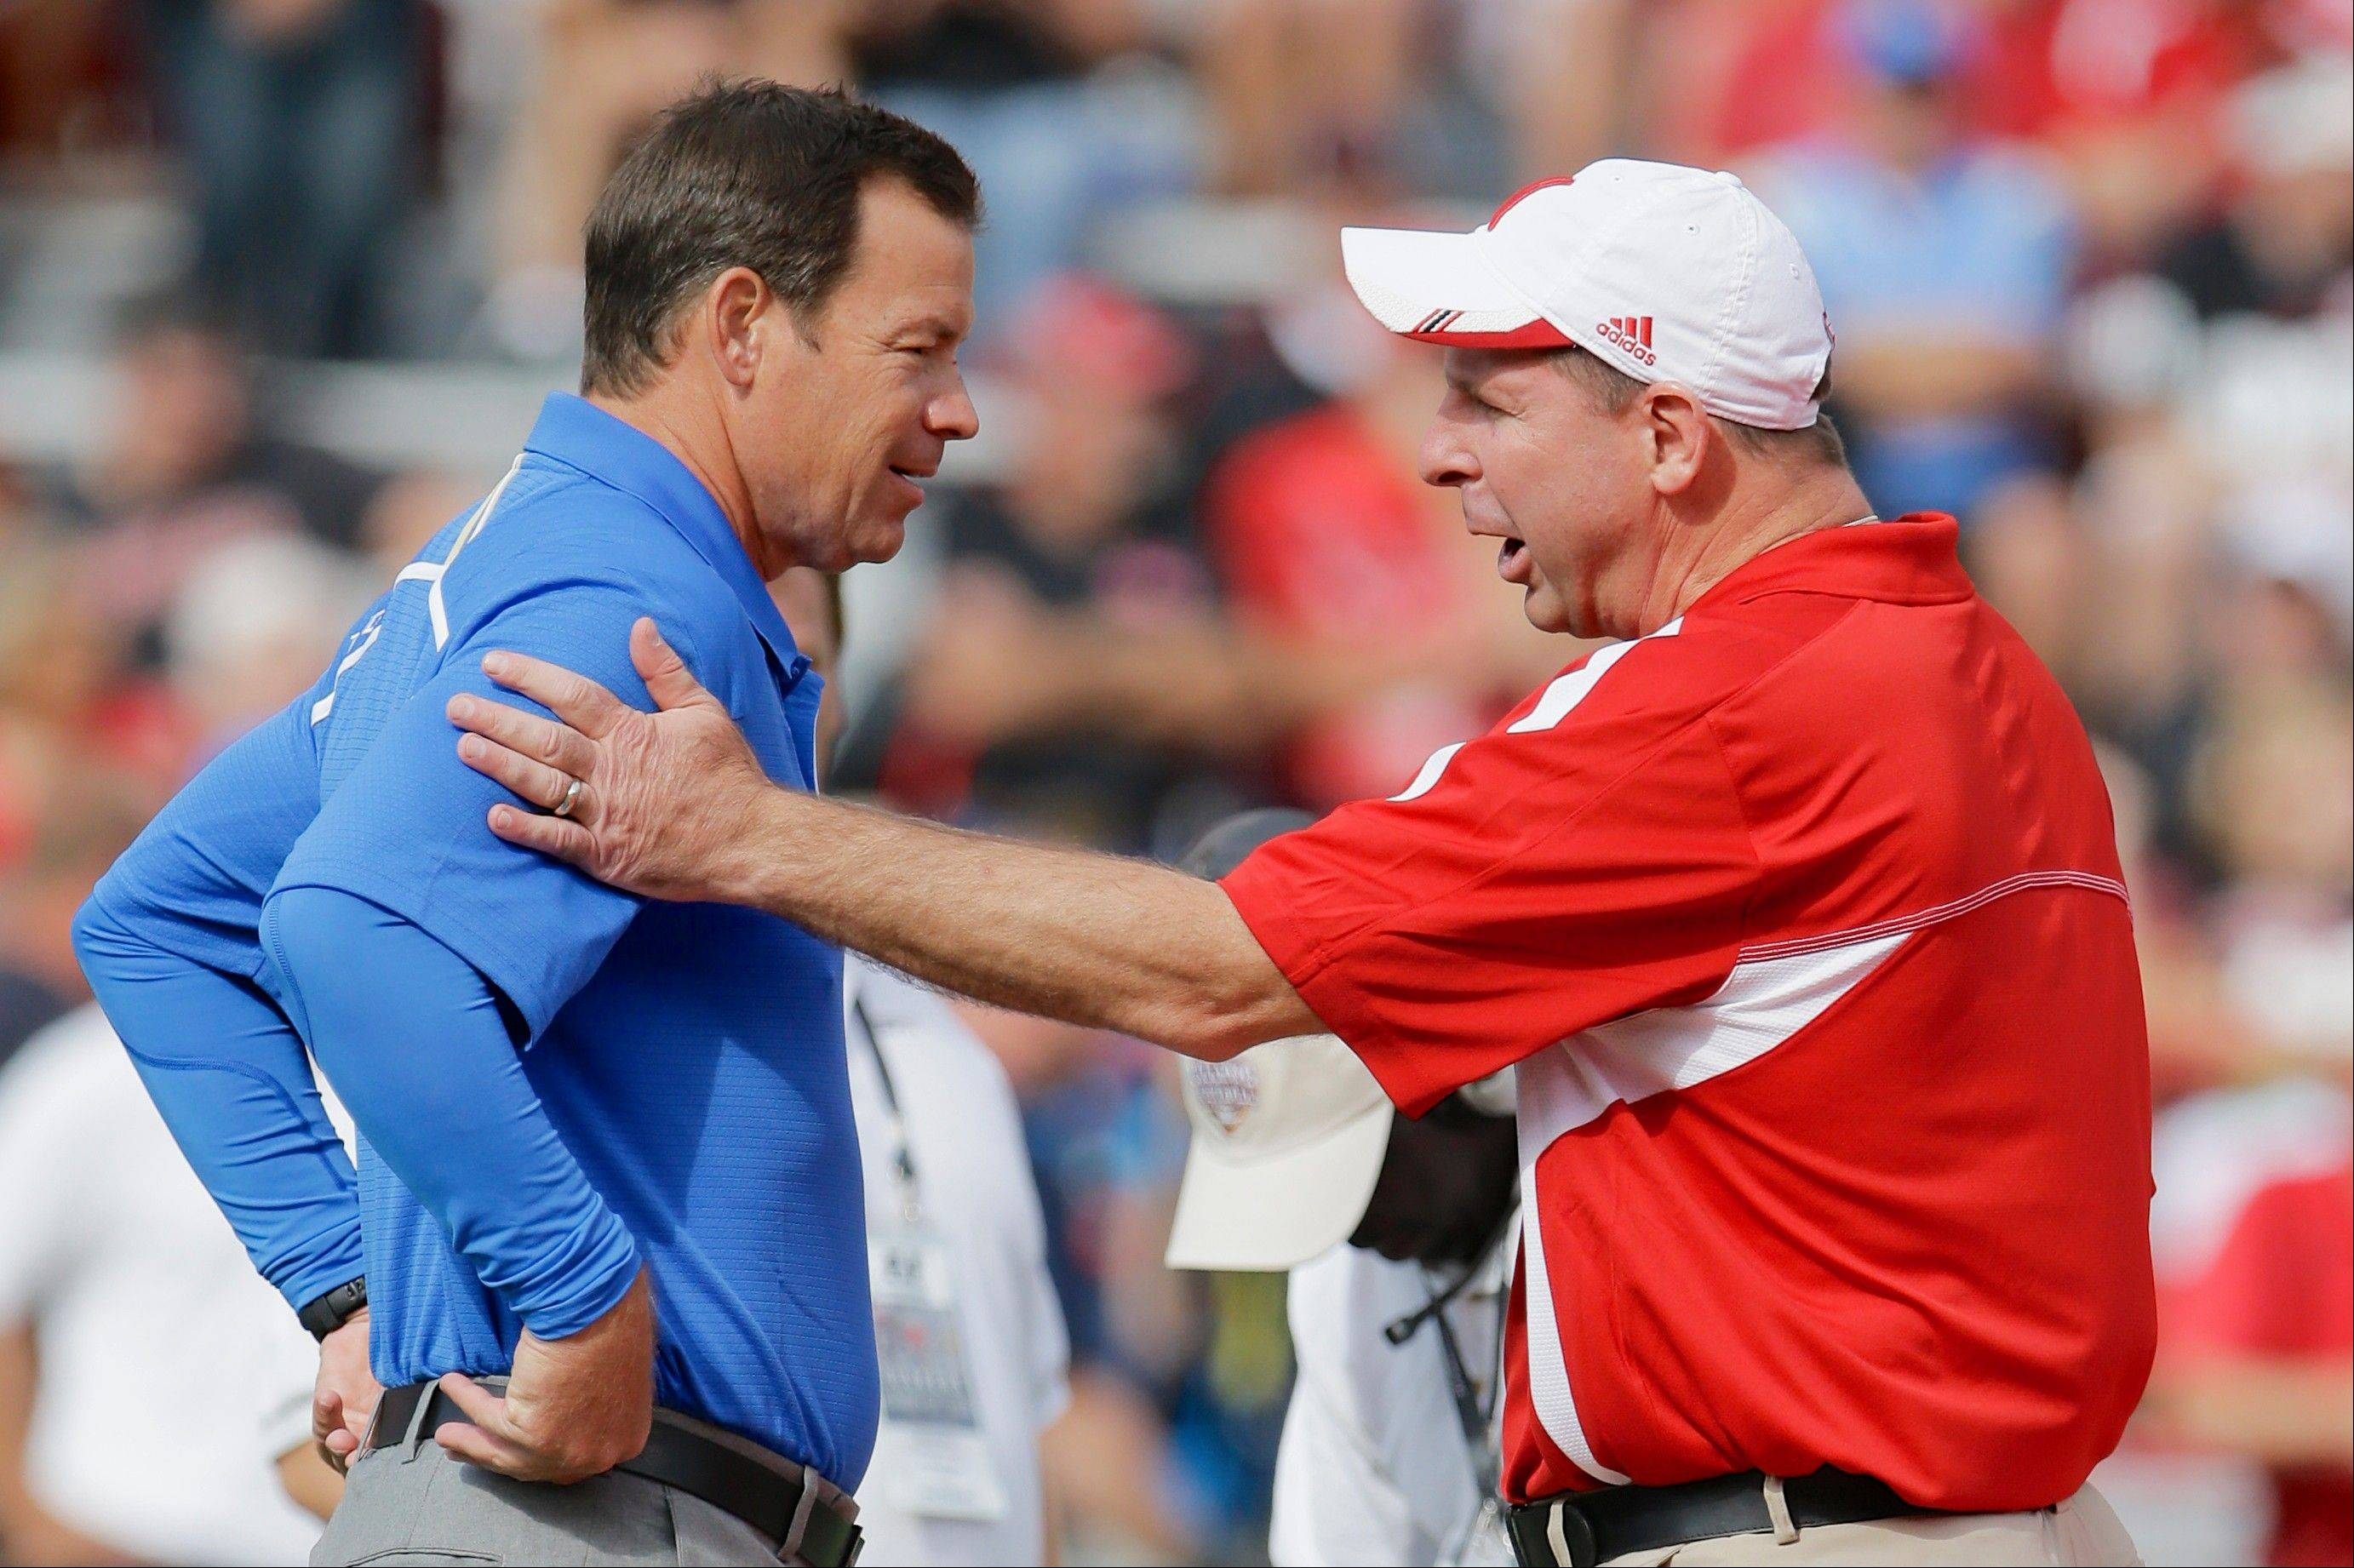 UCLA head coach Jim Mora, left, and Nebraska head coach Bo Pelini meet during warmups prior to an NCAA college football game in Lincoln, Neb., Saturday, Sept. 14, 2013.